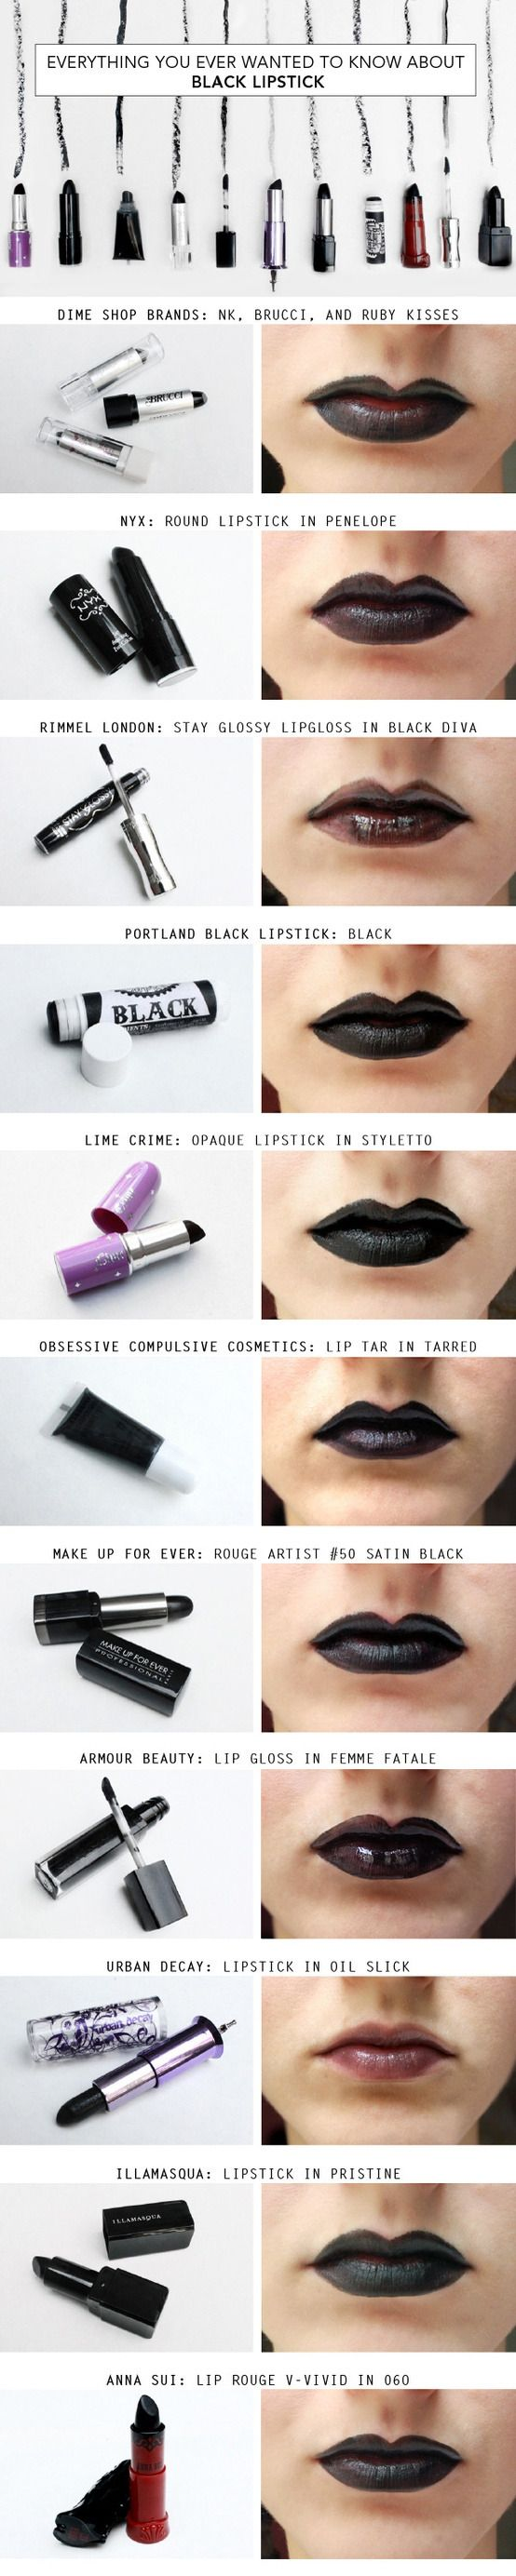 Black Lipstick: The Best Color You've Probably Never Tried! [I never looked good in black lipstick]